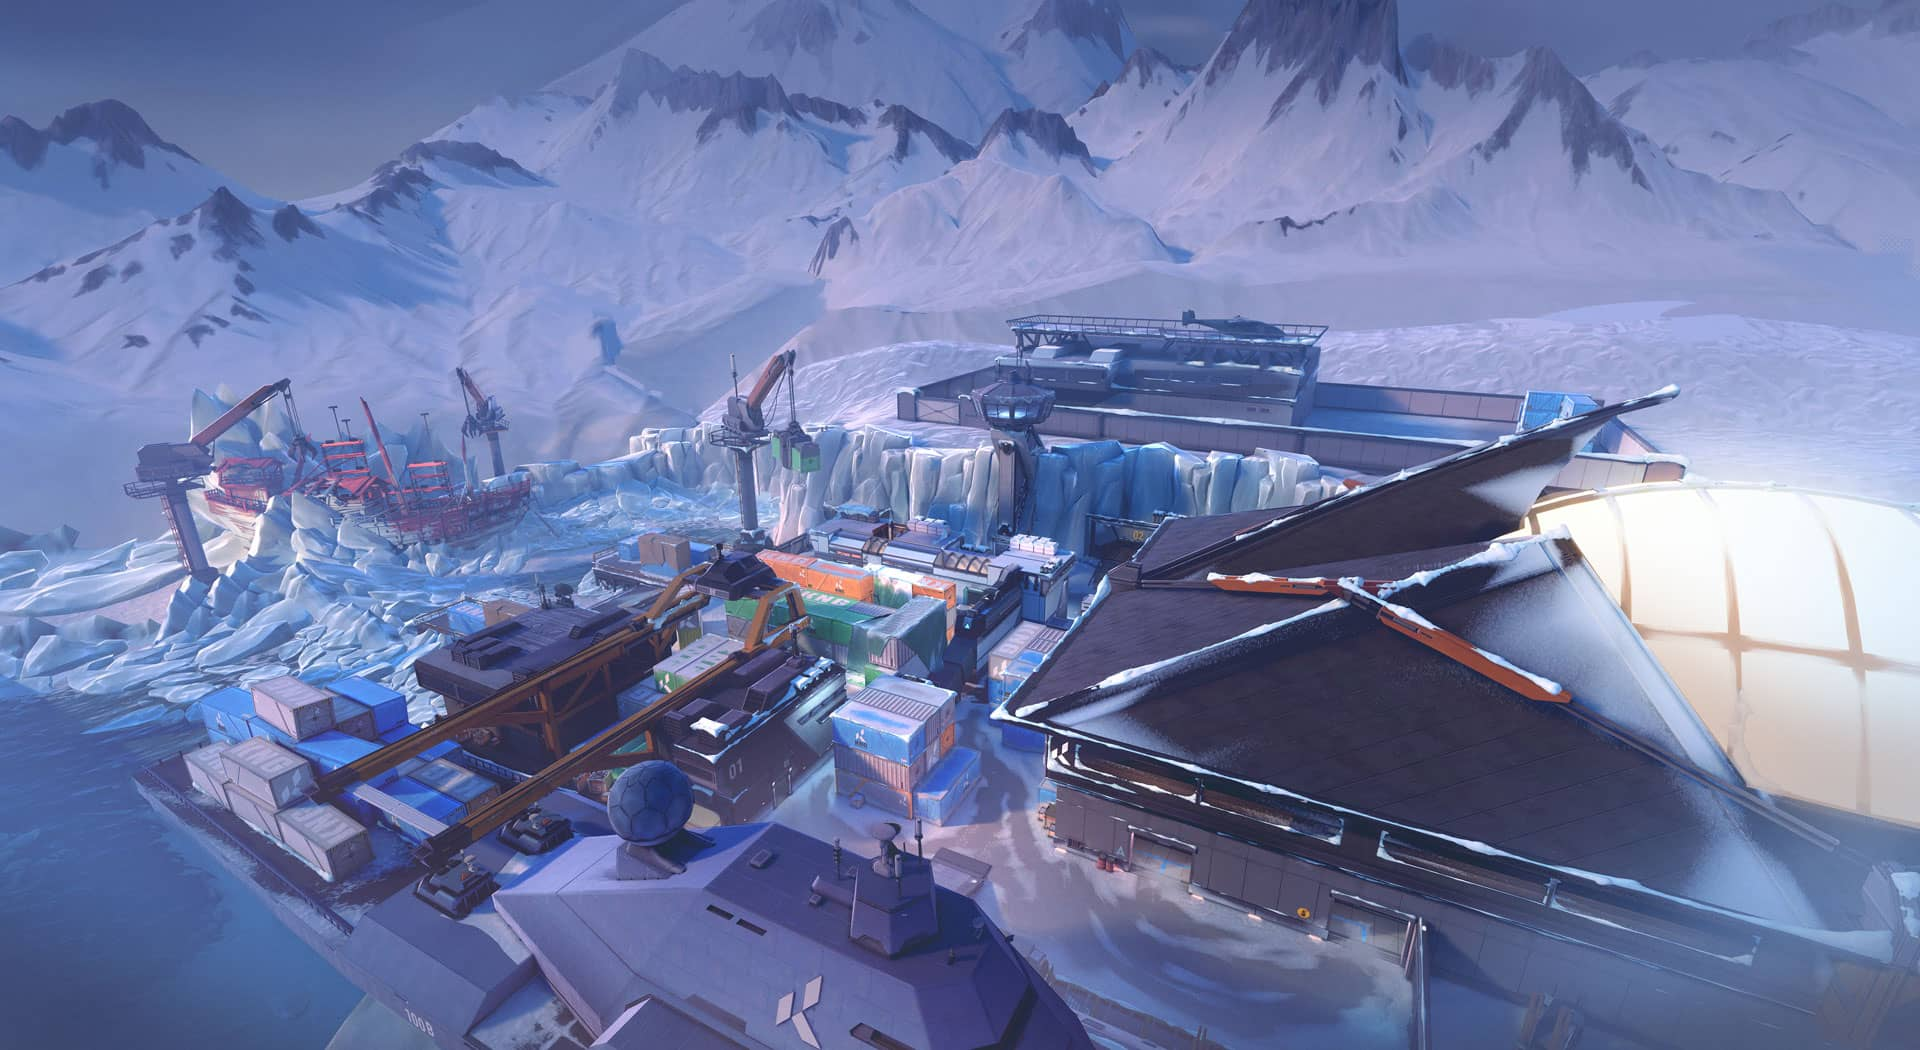 Full Guide for Valorant new IceBox map